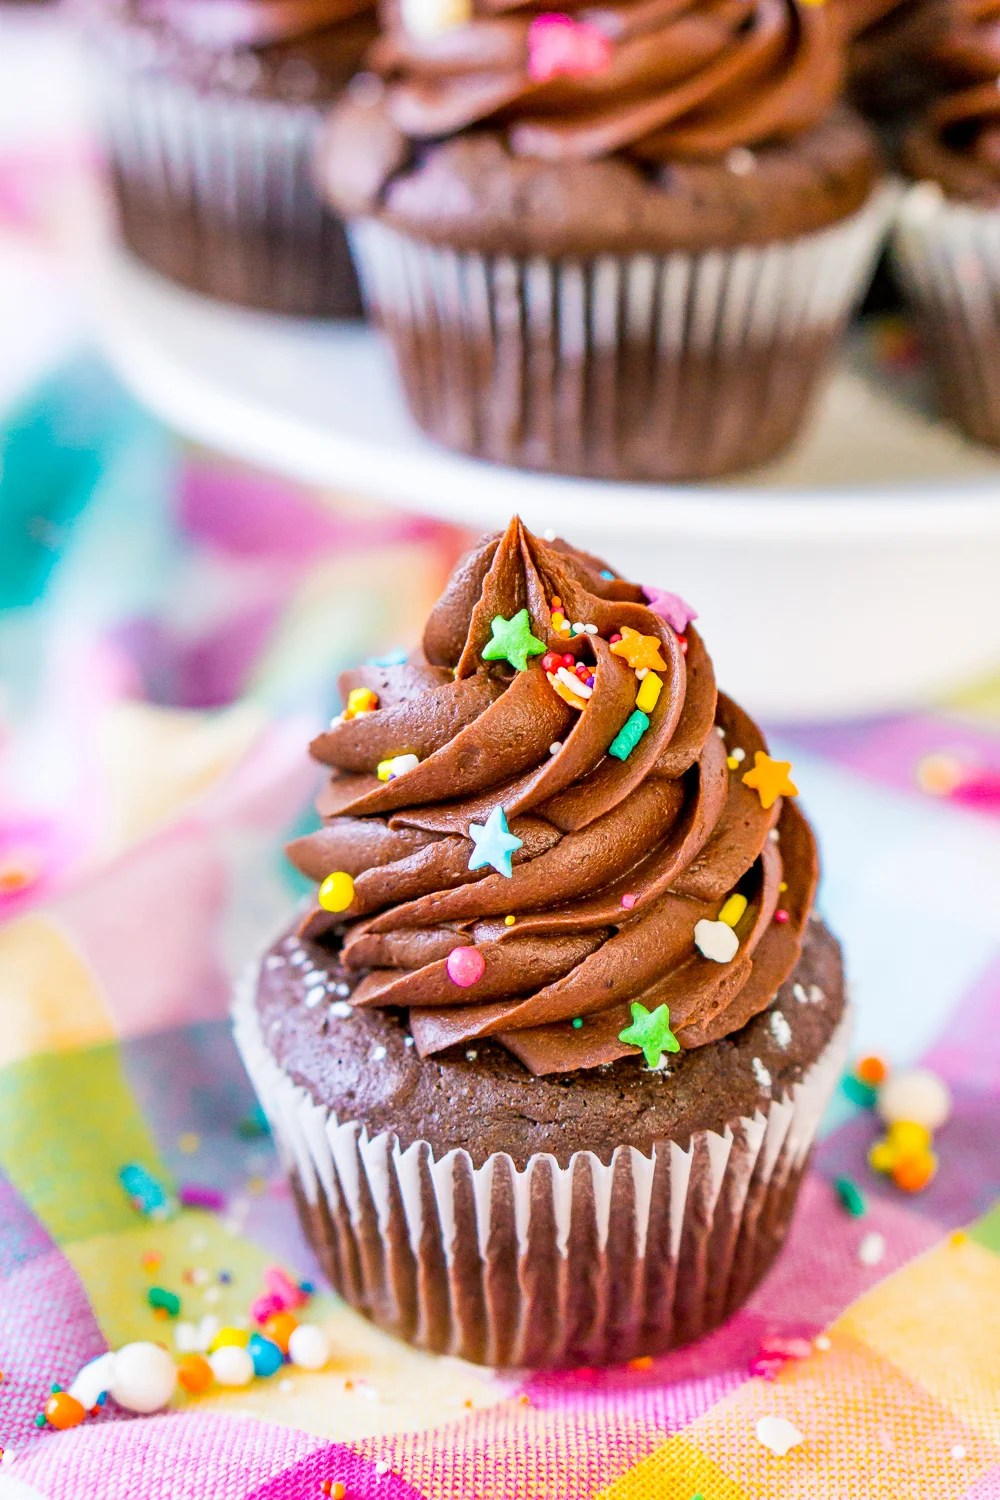 Chocolate Cupcake with Chocolate Buttercream Frosting on colorful napkin with colorful sprinkles